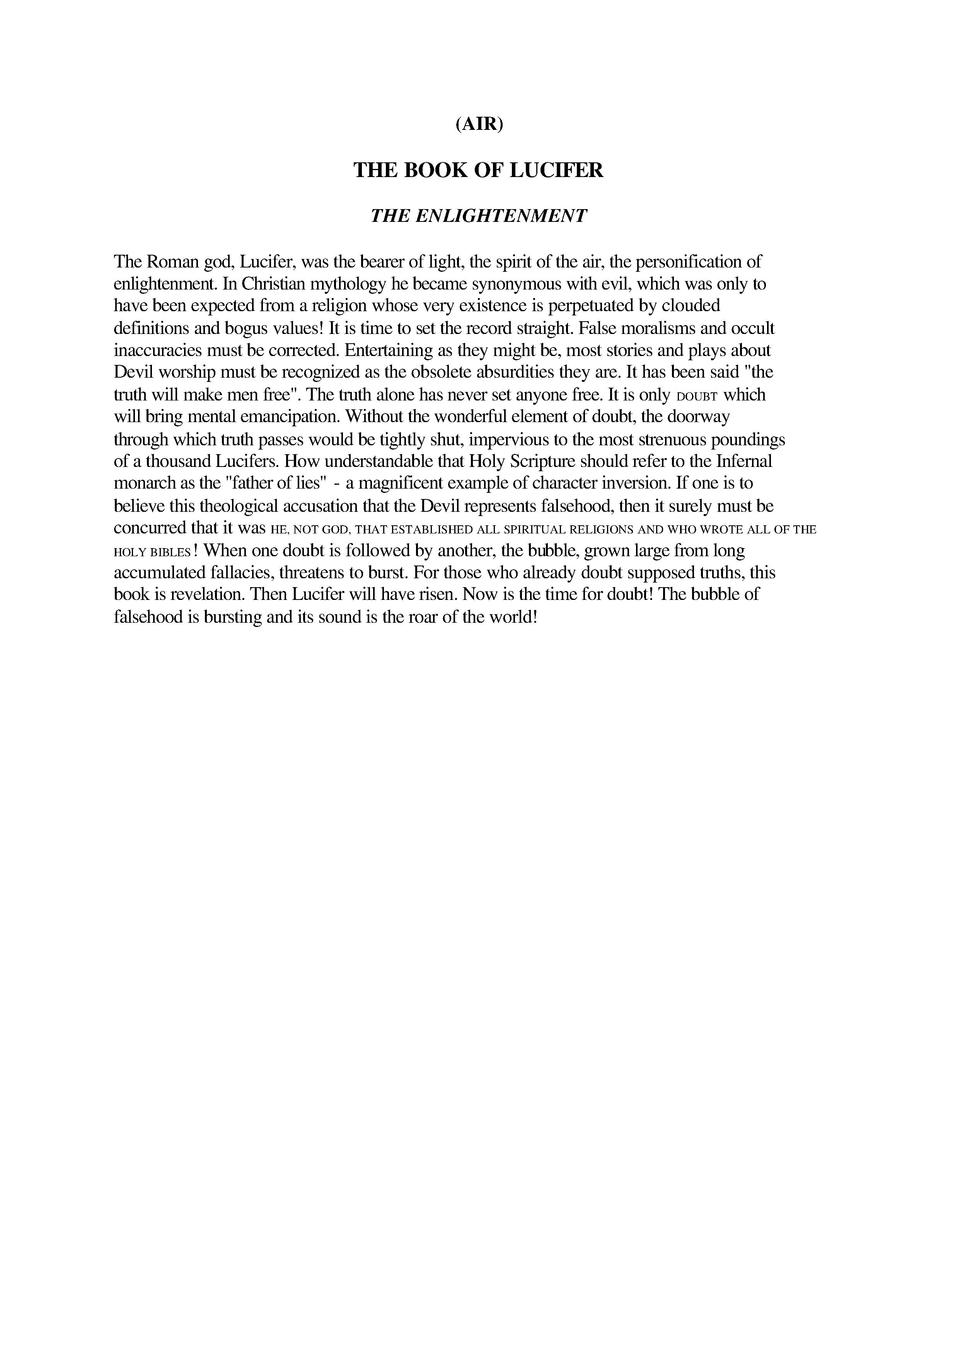 the book of lucifer the enlightenment pdf